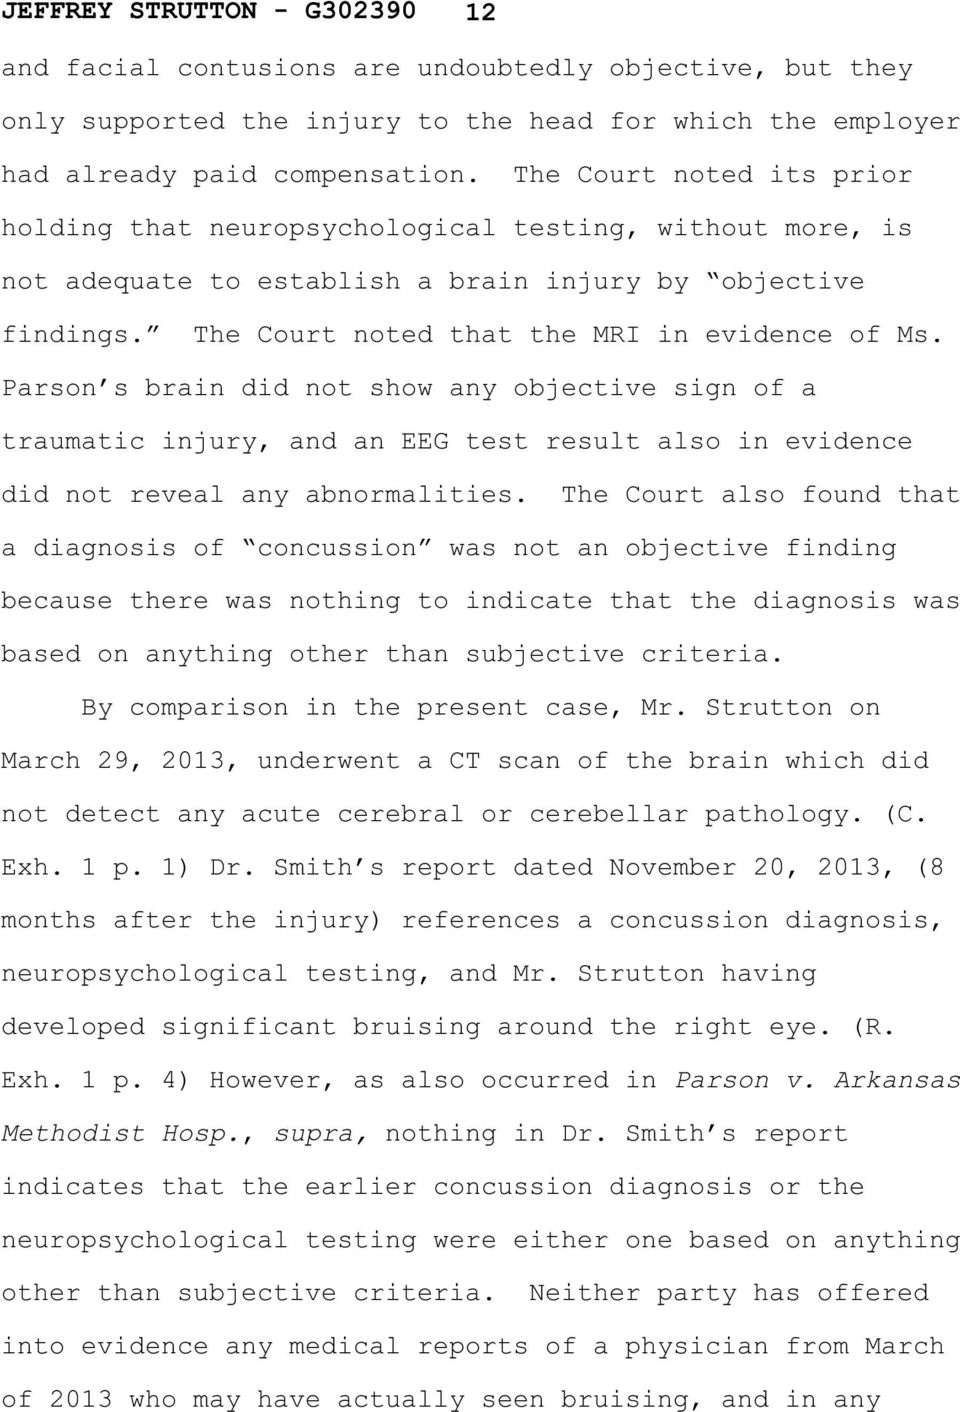 Parson s brain did not show any objective sign of a traumatic injury, and an EEG test result also in evidence did not reveal any abnormalities.